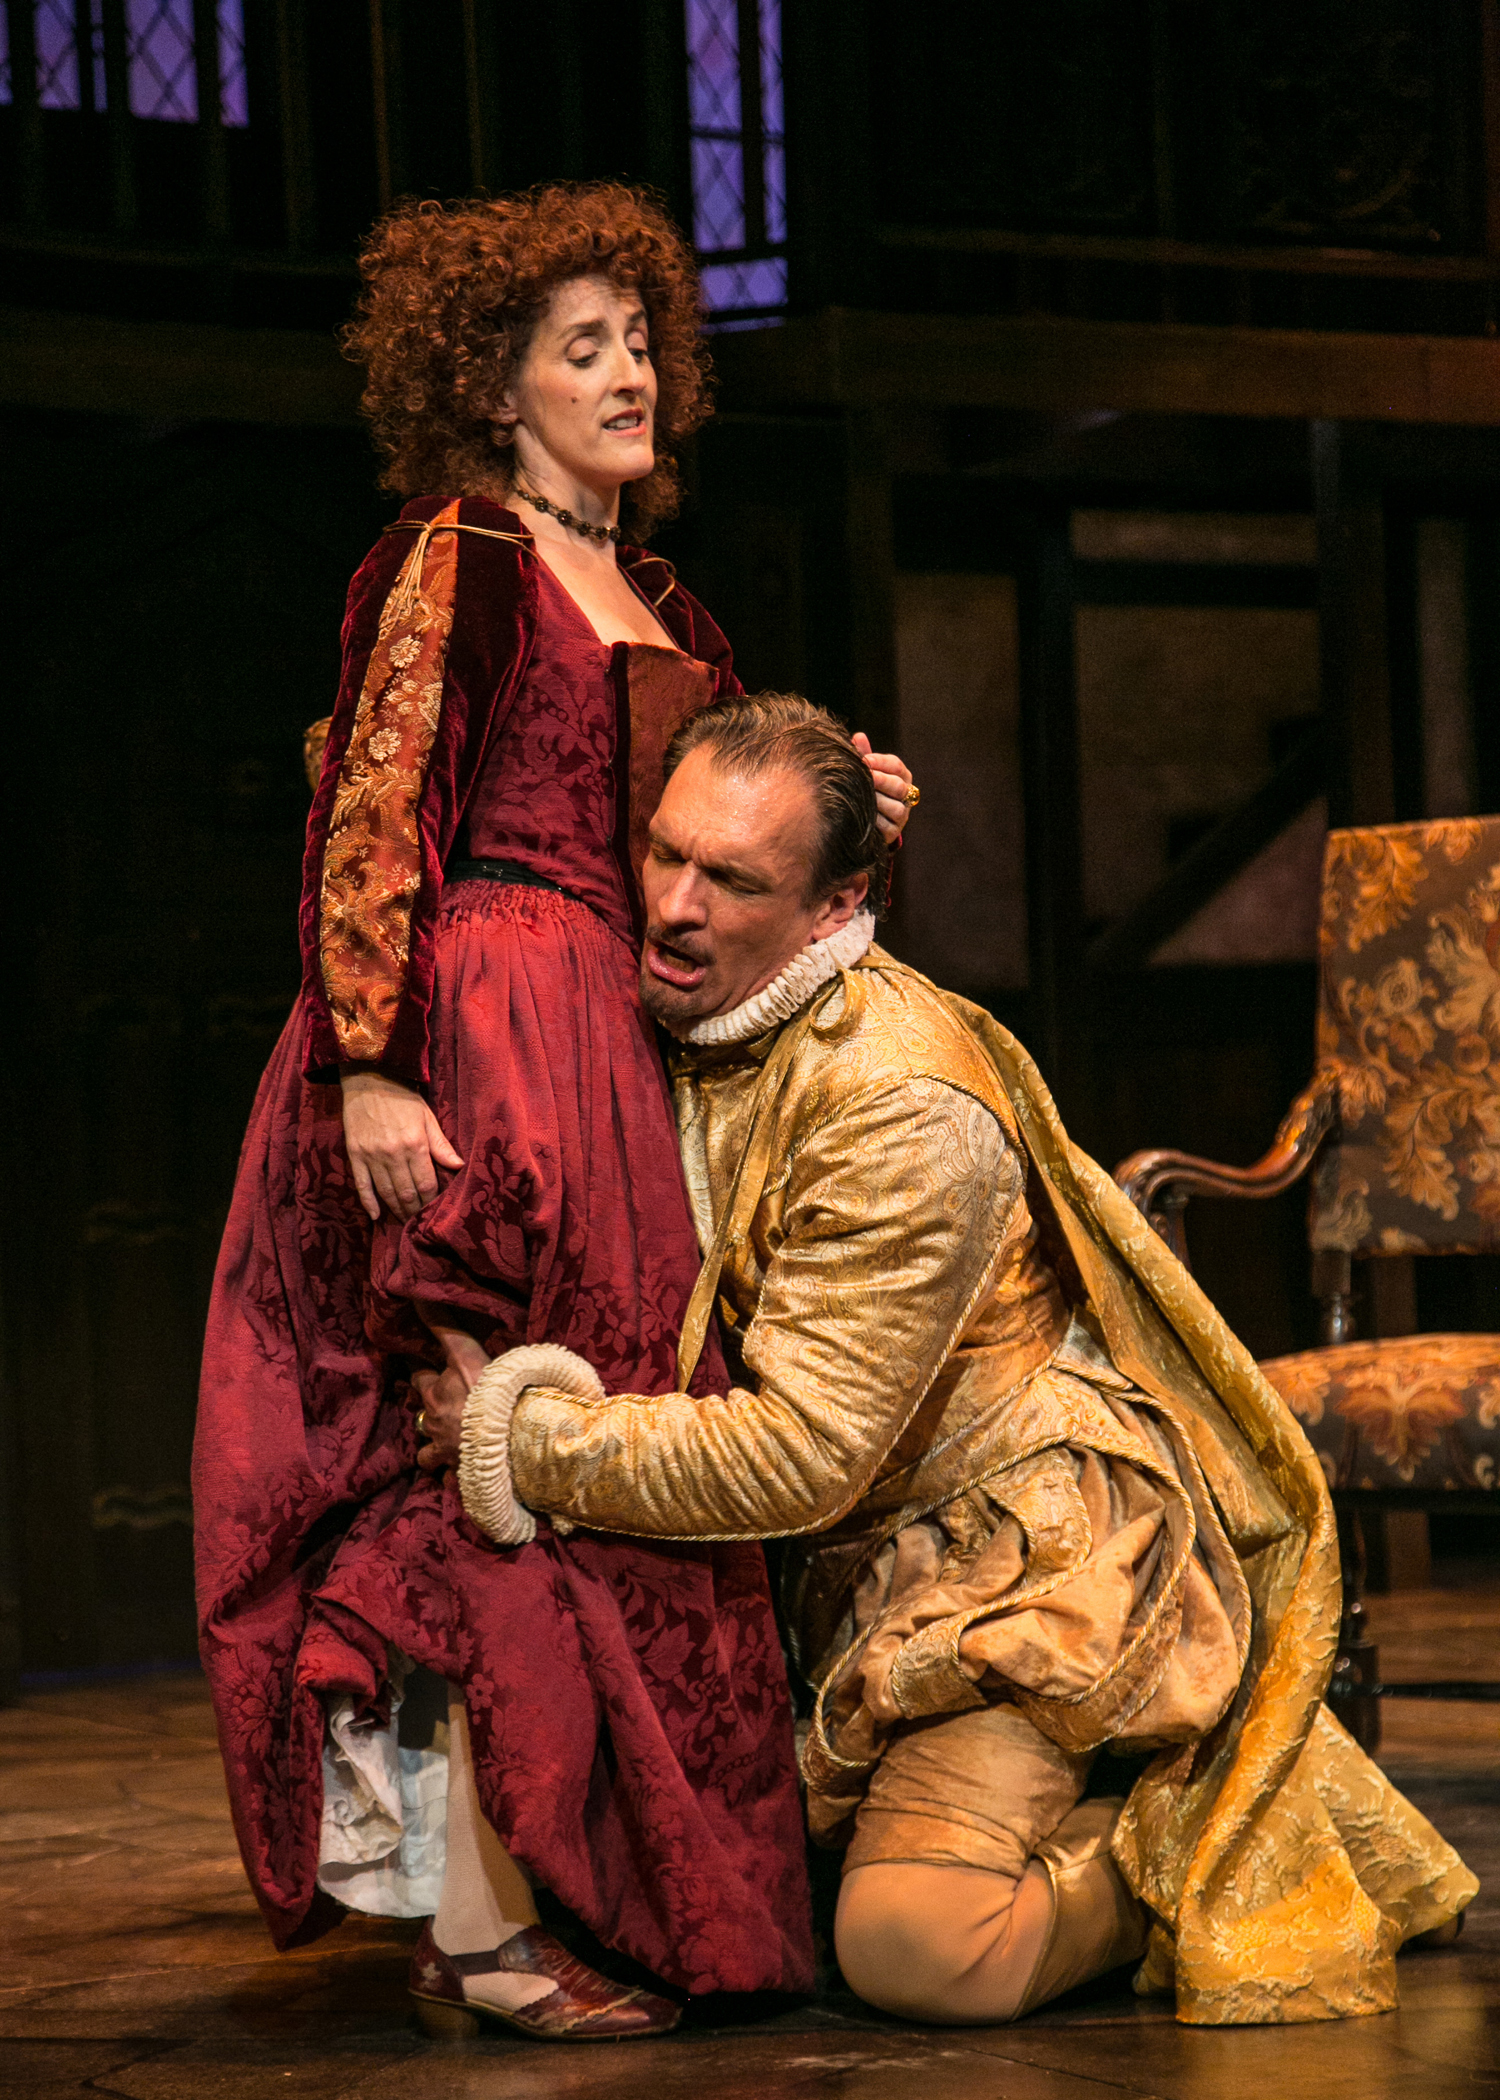 a comprehensive review of the alchemist a play by ben jonson The alchemist: stage history comment as fearlessly on society as did ben jonson and of the alchemist as a play for the stage was underlined.